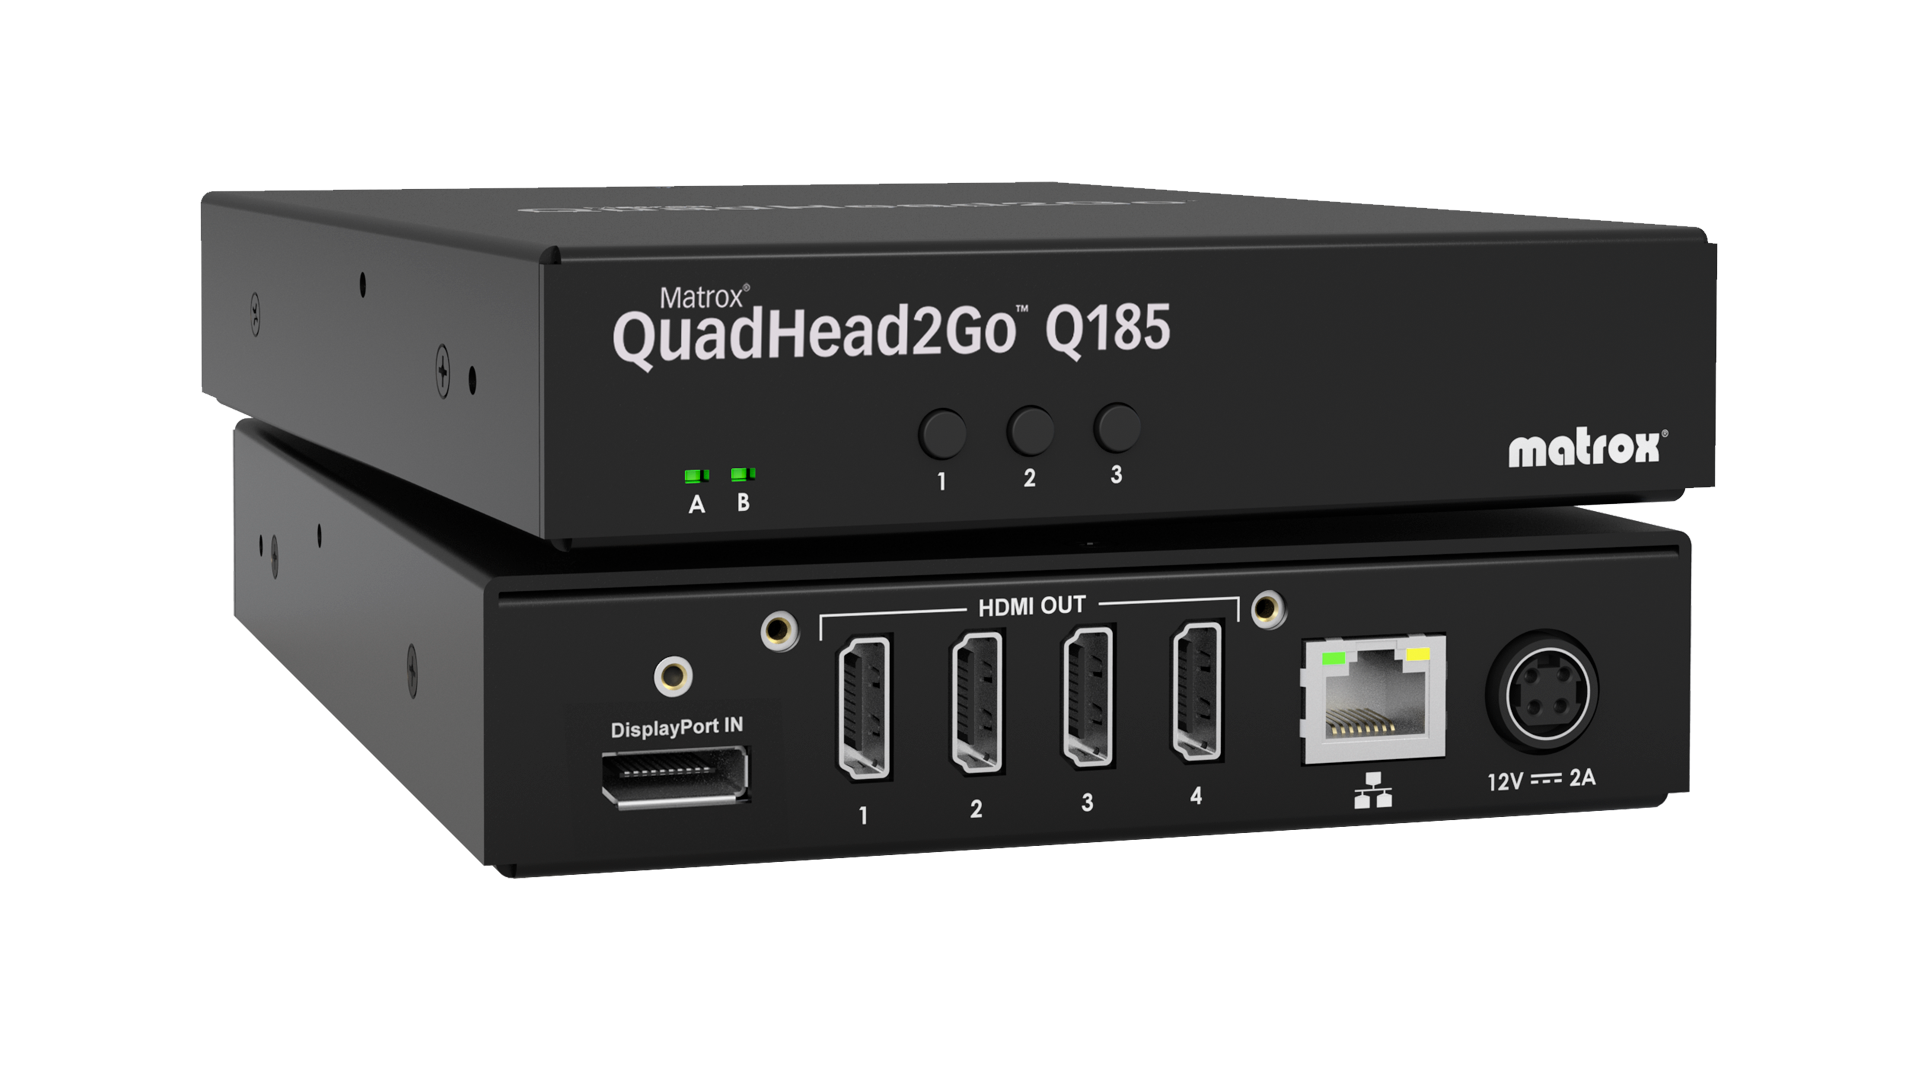 Matrox QuadHead2Go Q185 Multi-Monitor Controller Appliance